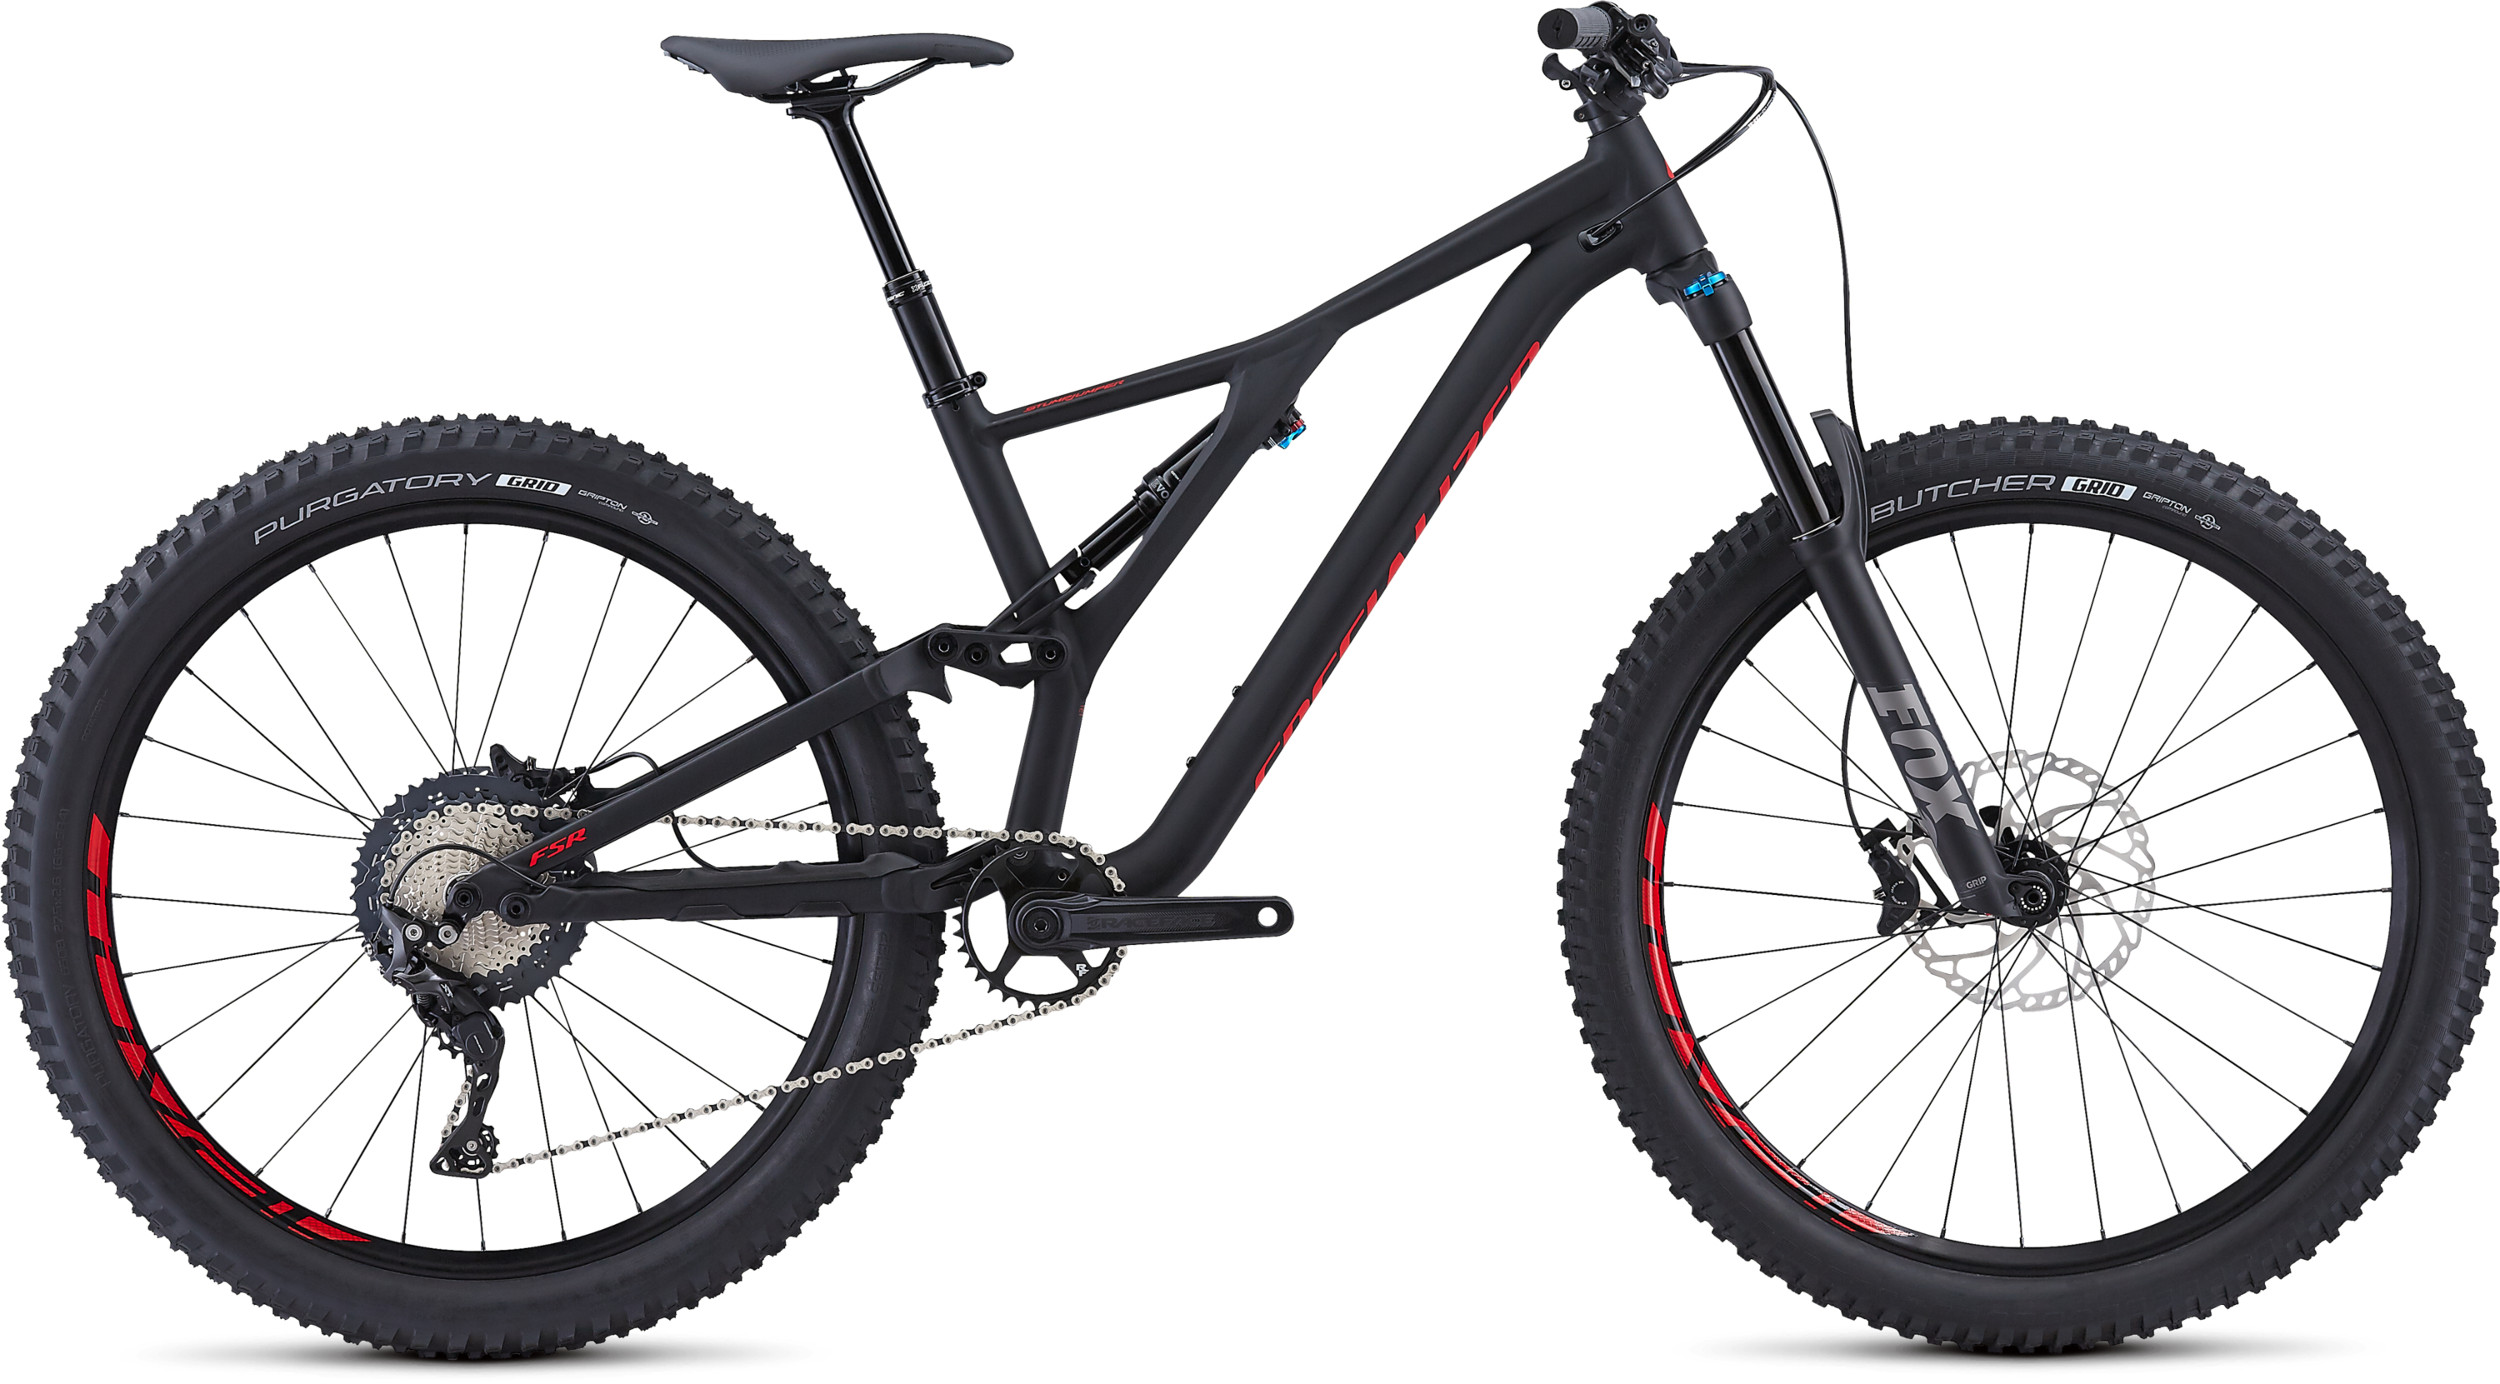 3270c0a910b Specialized Stumpjumper Comp Alloy 27.5 Mountain Bike 2019 Black/Red  £2,249.99